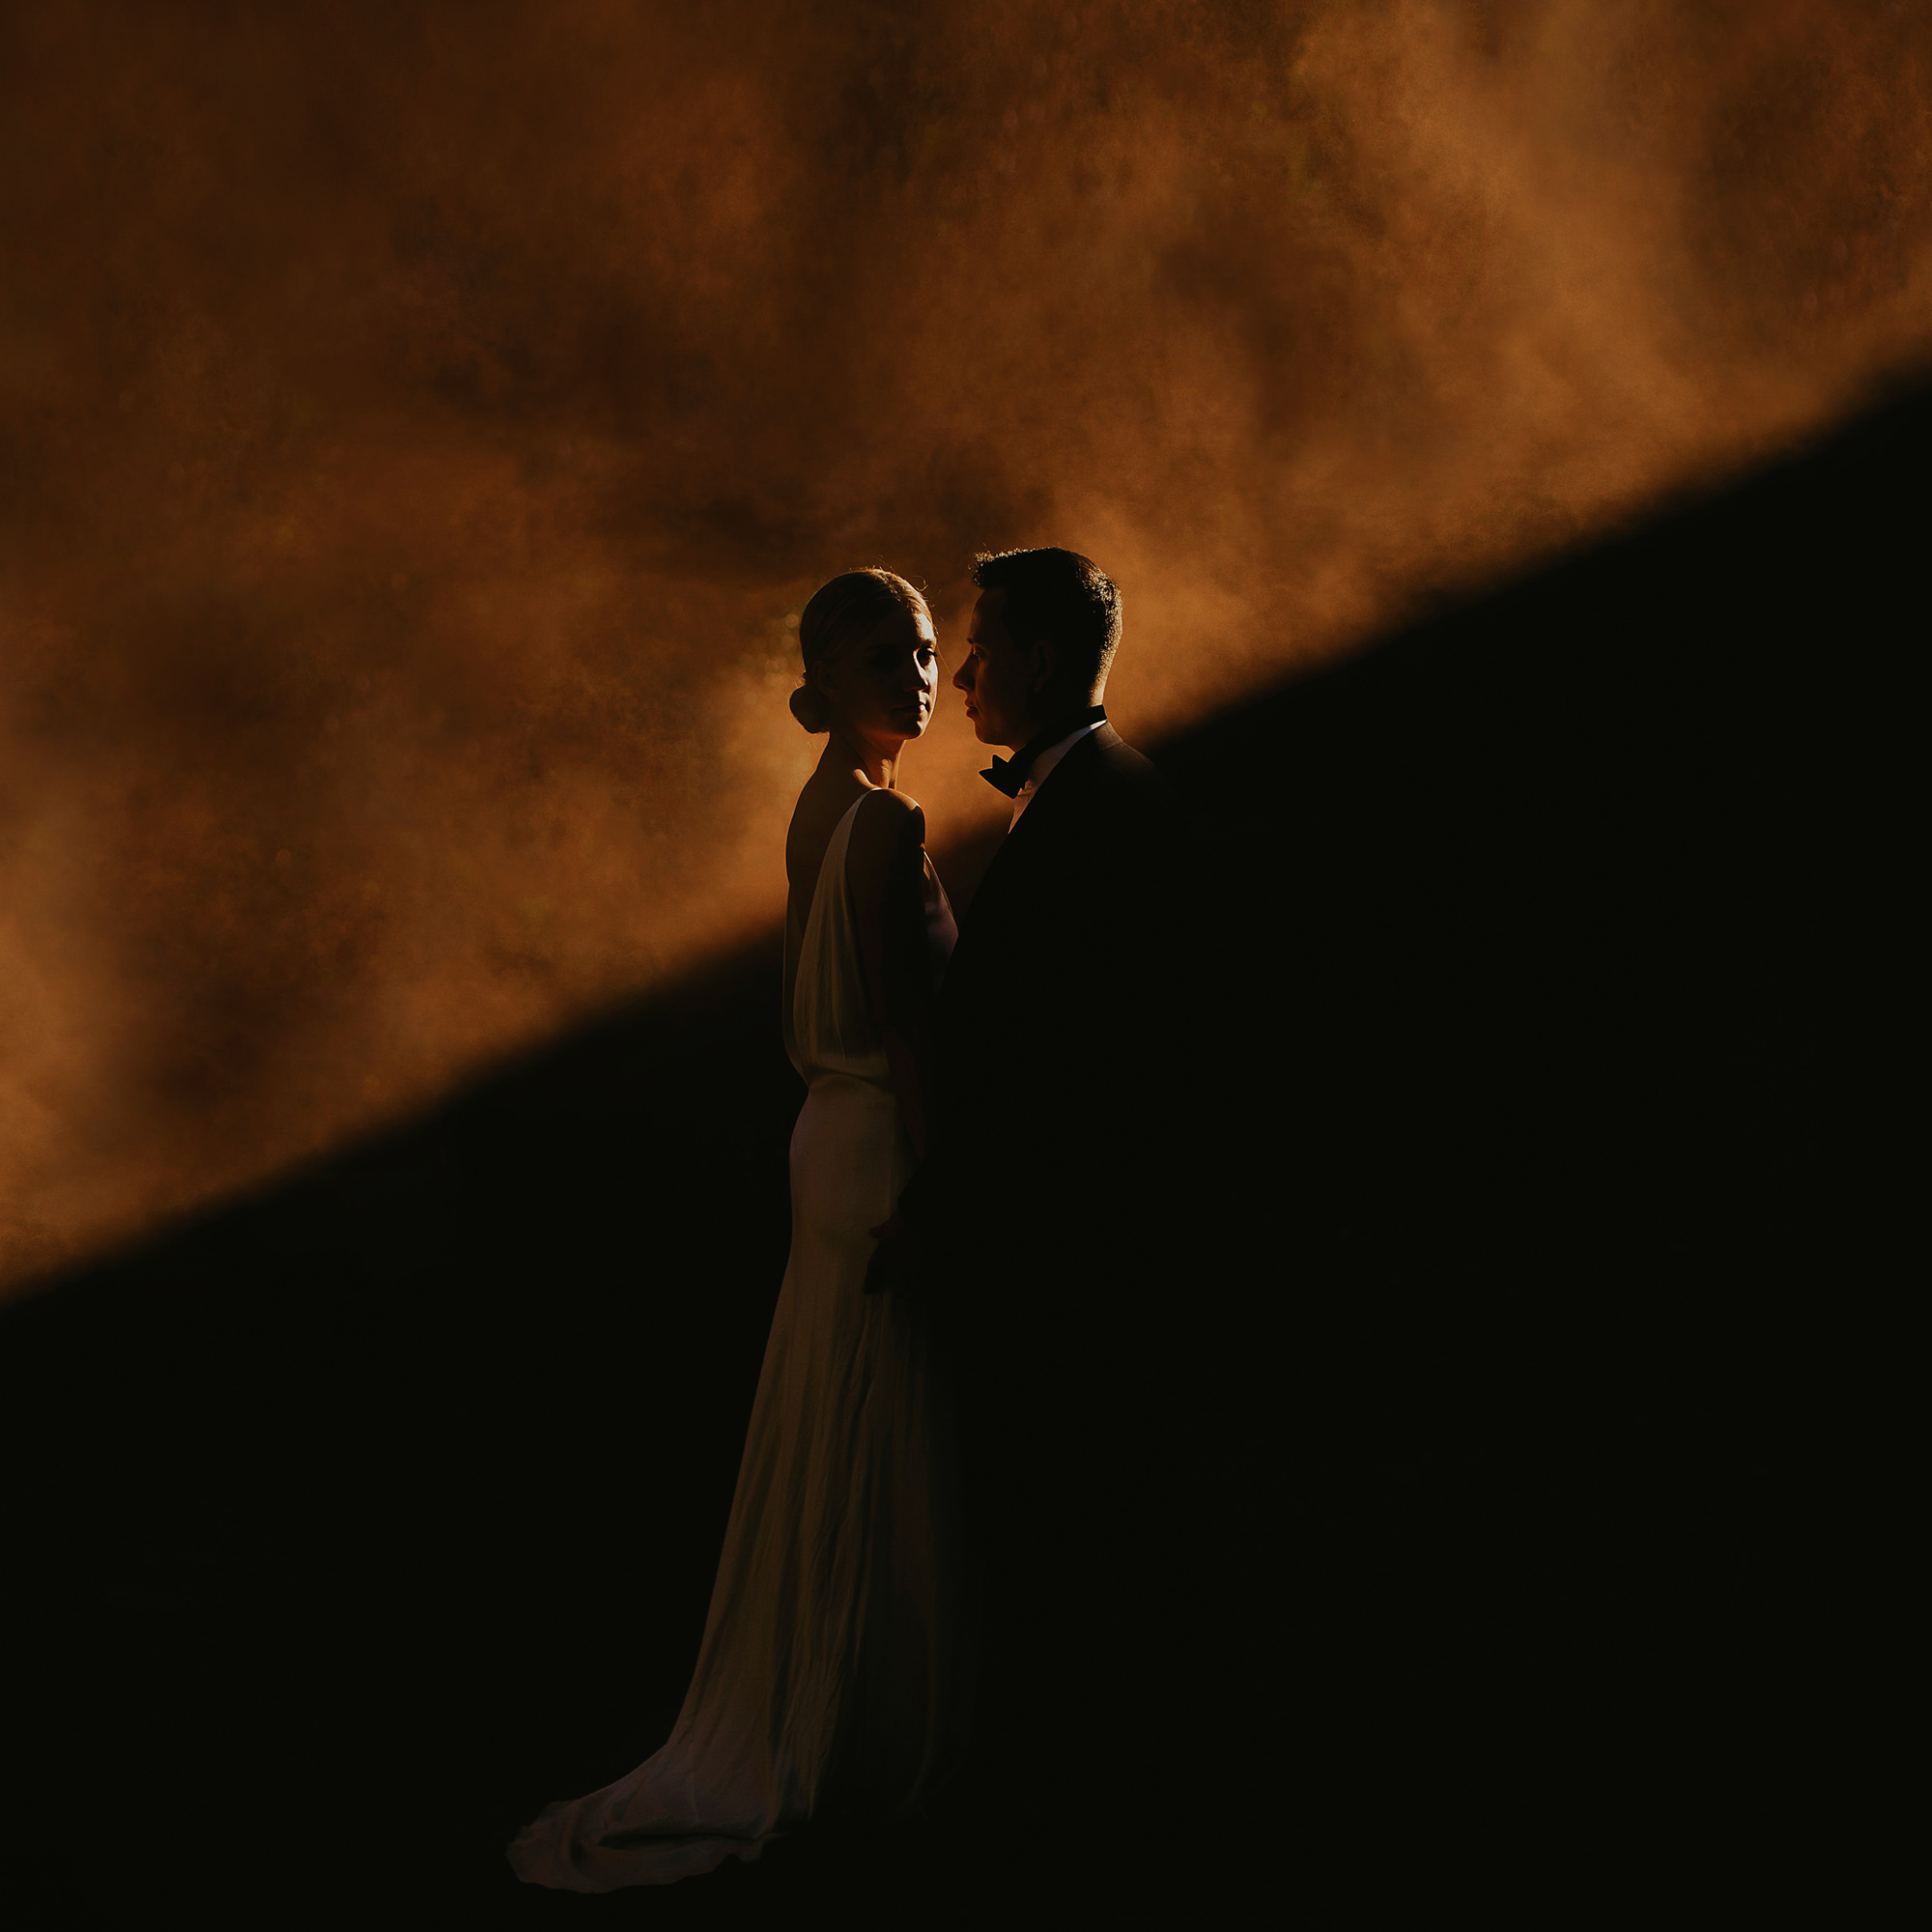 Smokey and dramatic lit bride and groom - photo by Dan O'Day